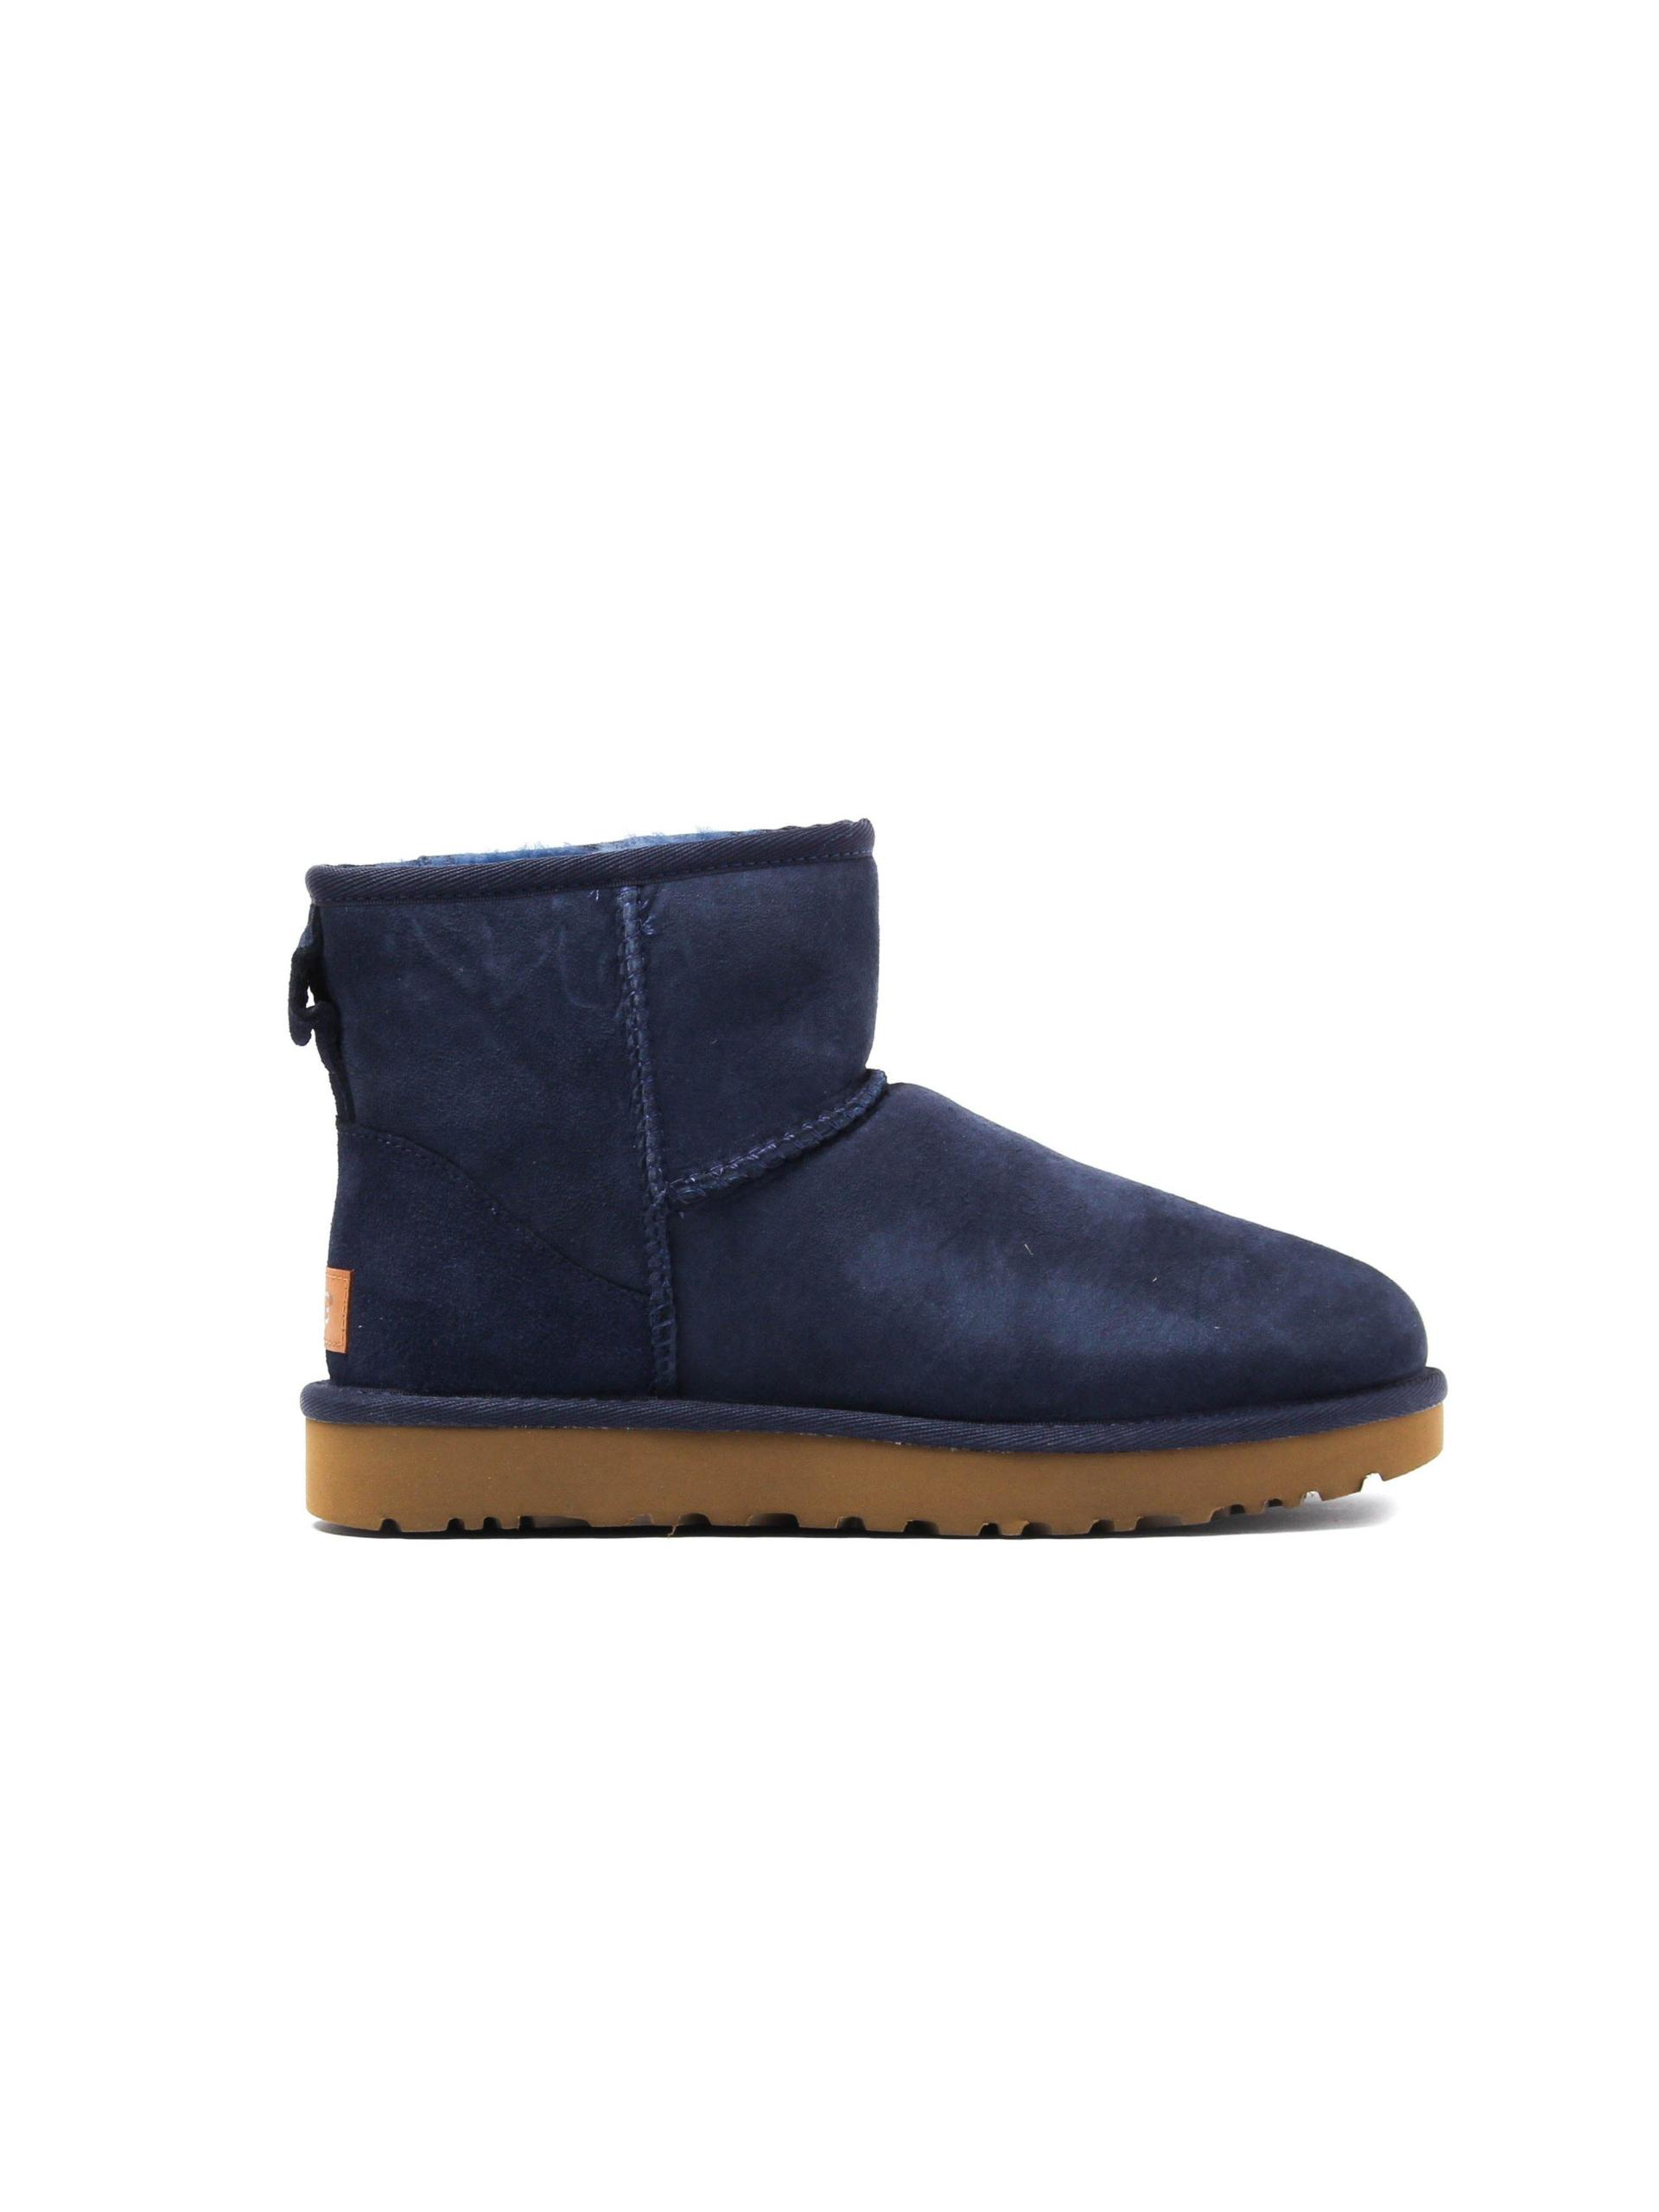 ebe4b9d8615 UGG Boots | Slippers | Shavertown, PA